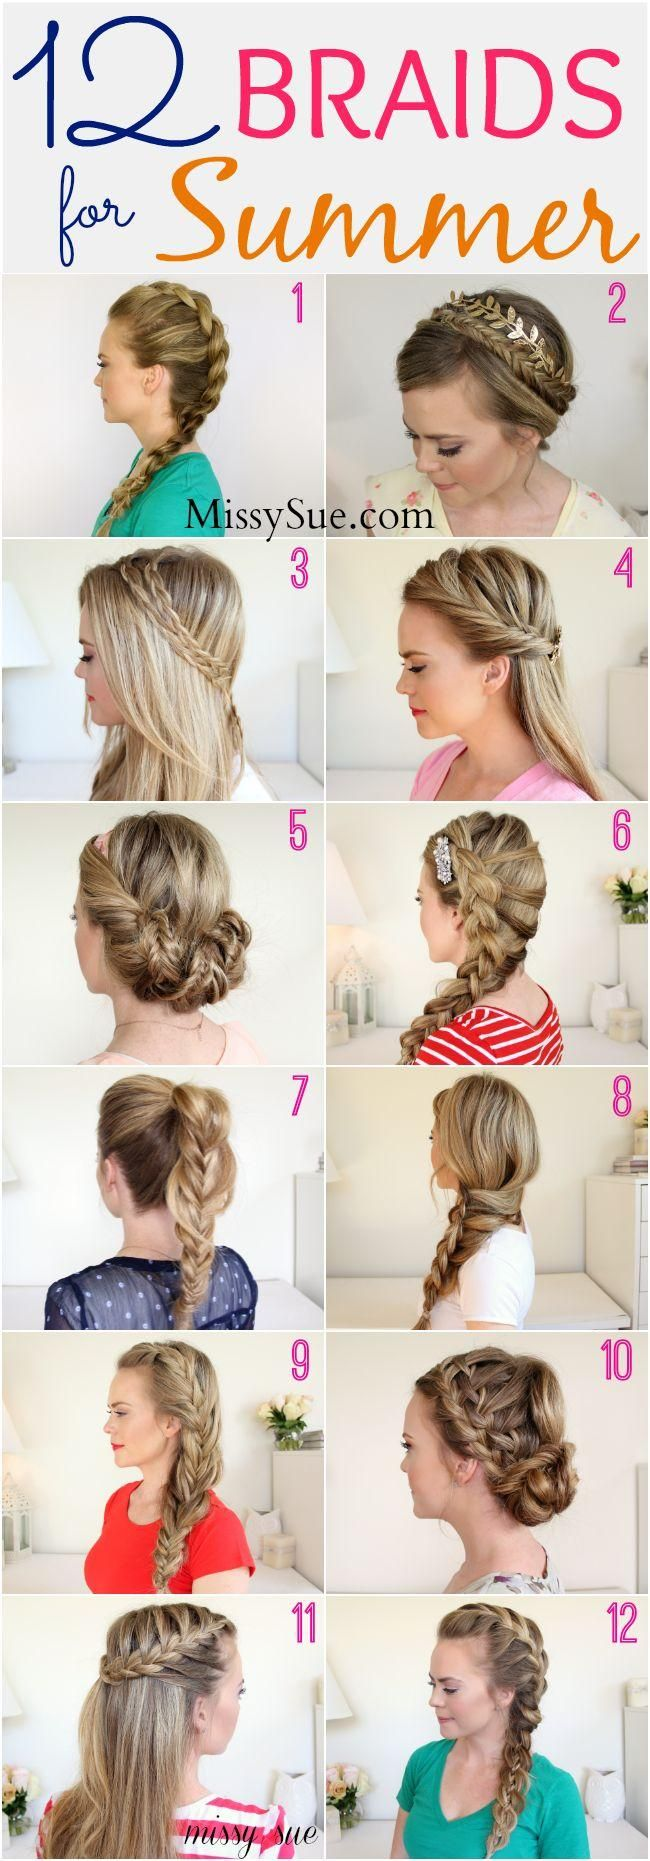 best nails and hair images on pinterest beauty makeup hair